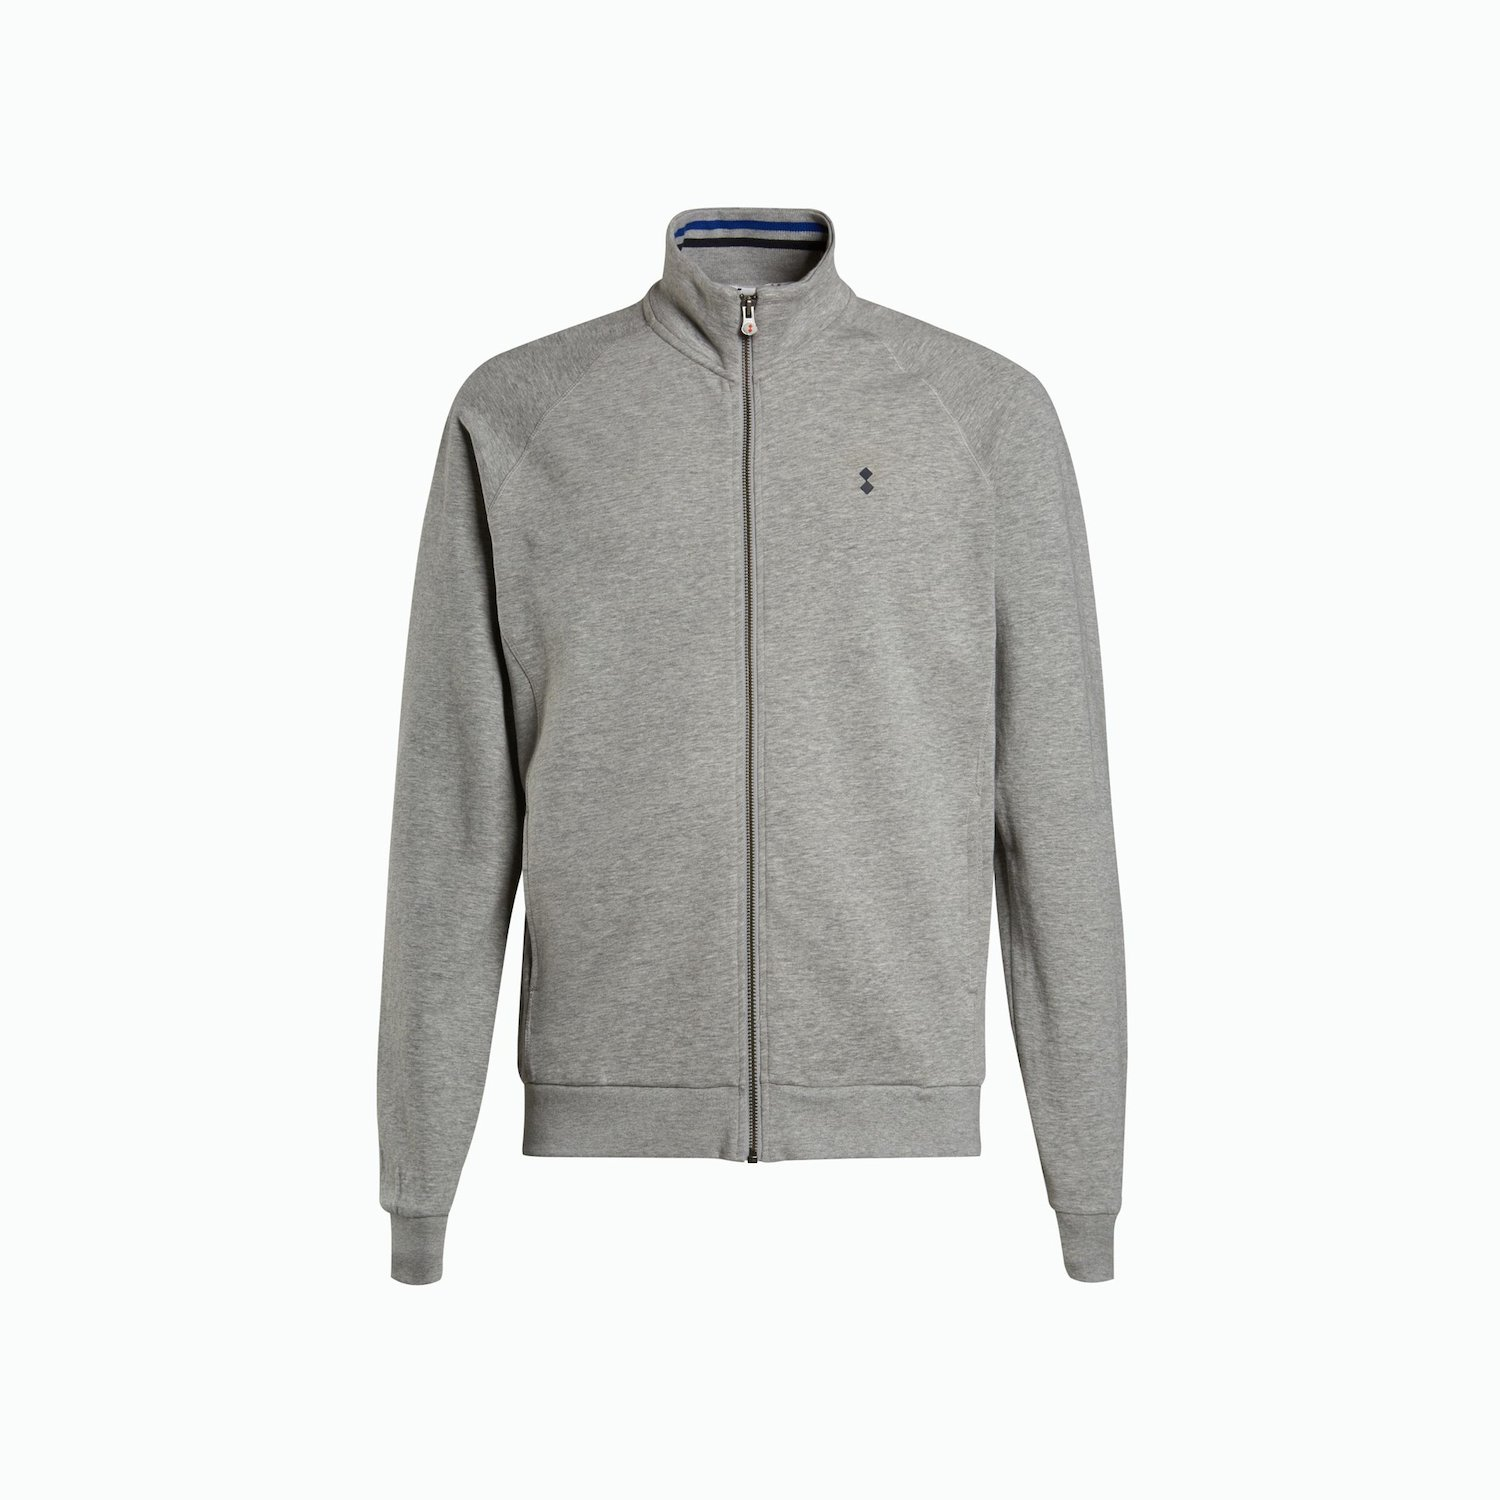 Sweatshirt A37 - Light Grey Melange